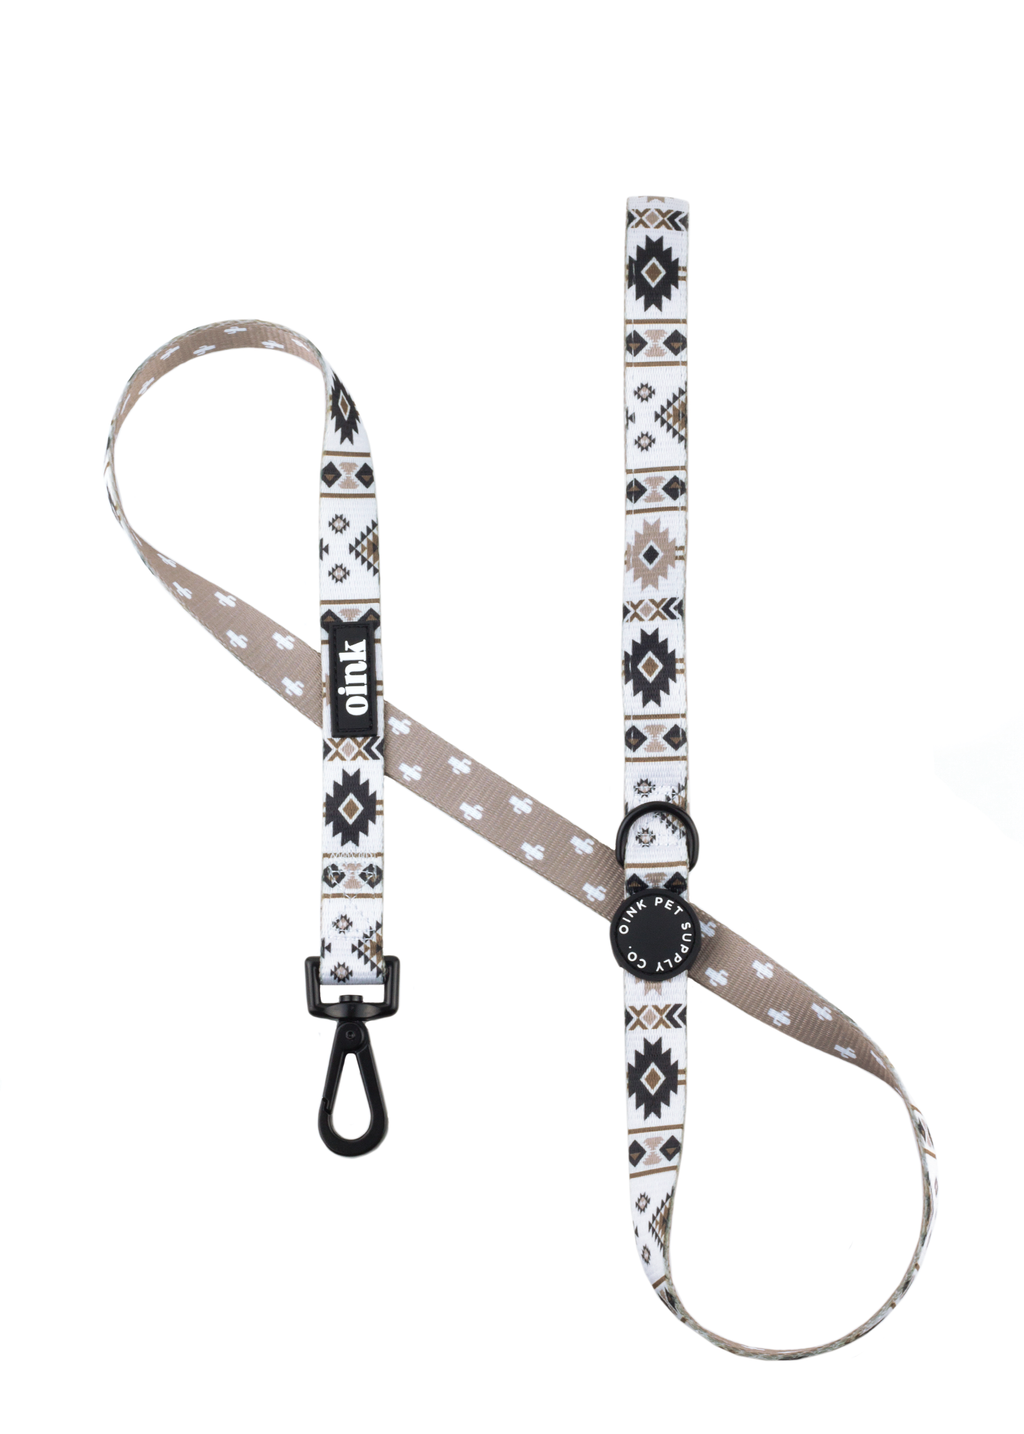 Oink Dog Leash With Neoprene Handle - Cactus and Aztec Print